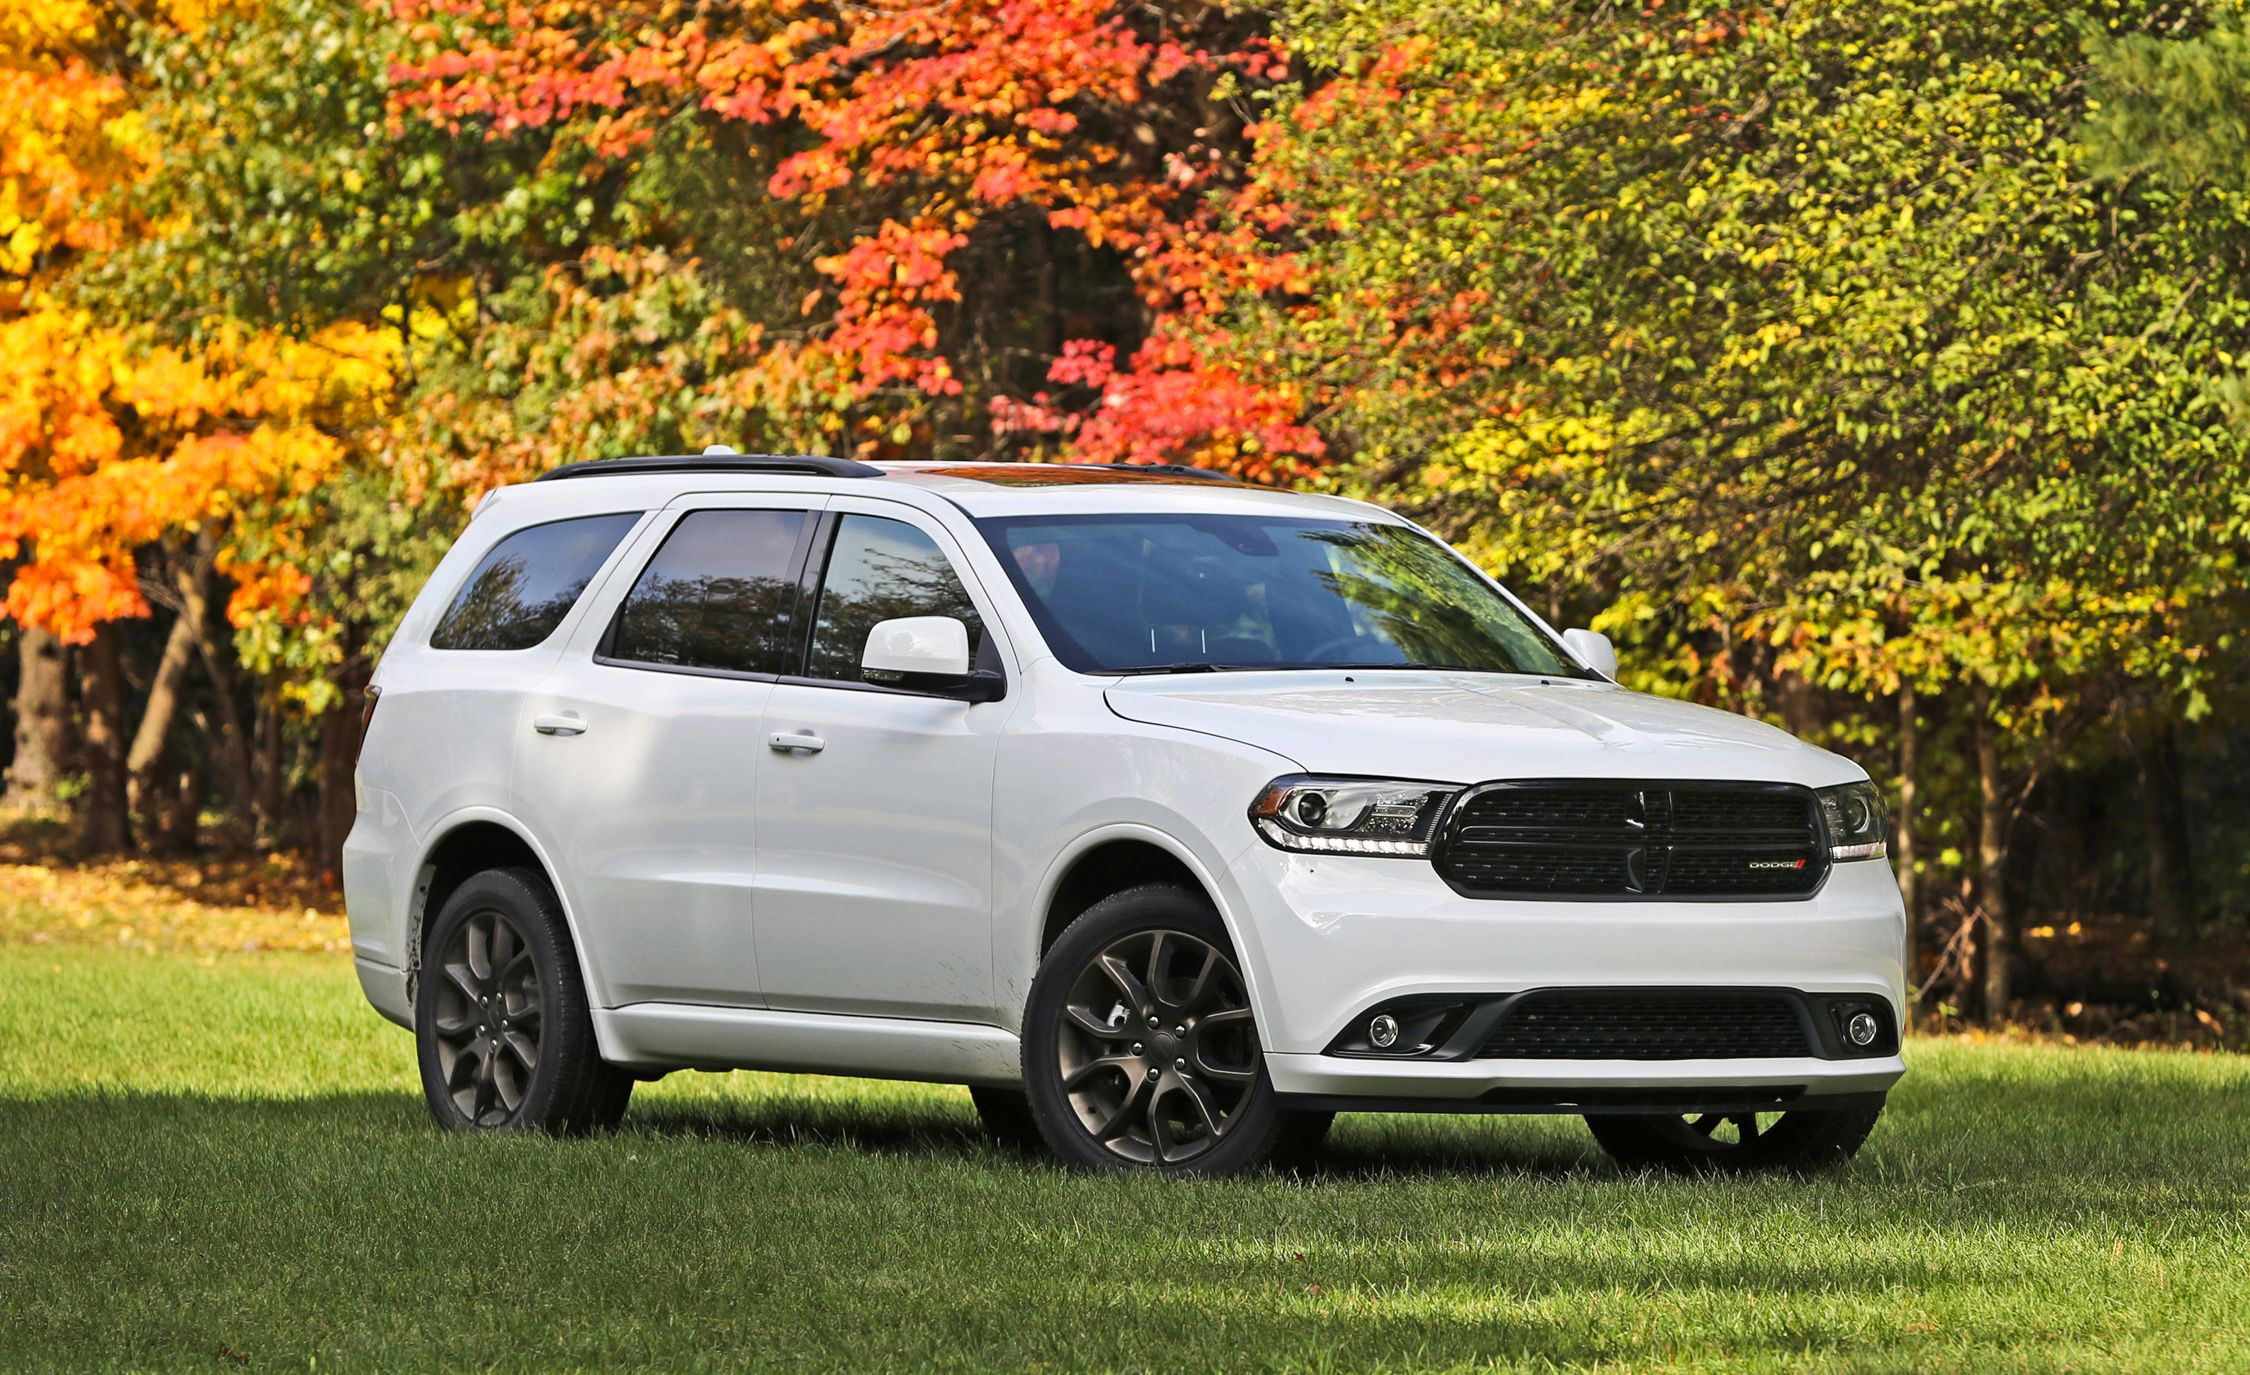 Ram Rt For Sale >> 2017 Dodge Durango | In-Depth Model Review | Car and Driver